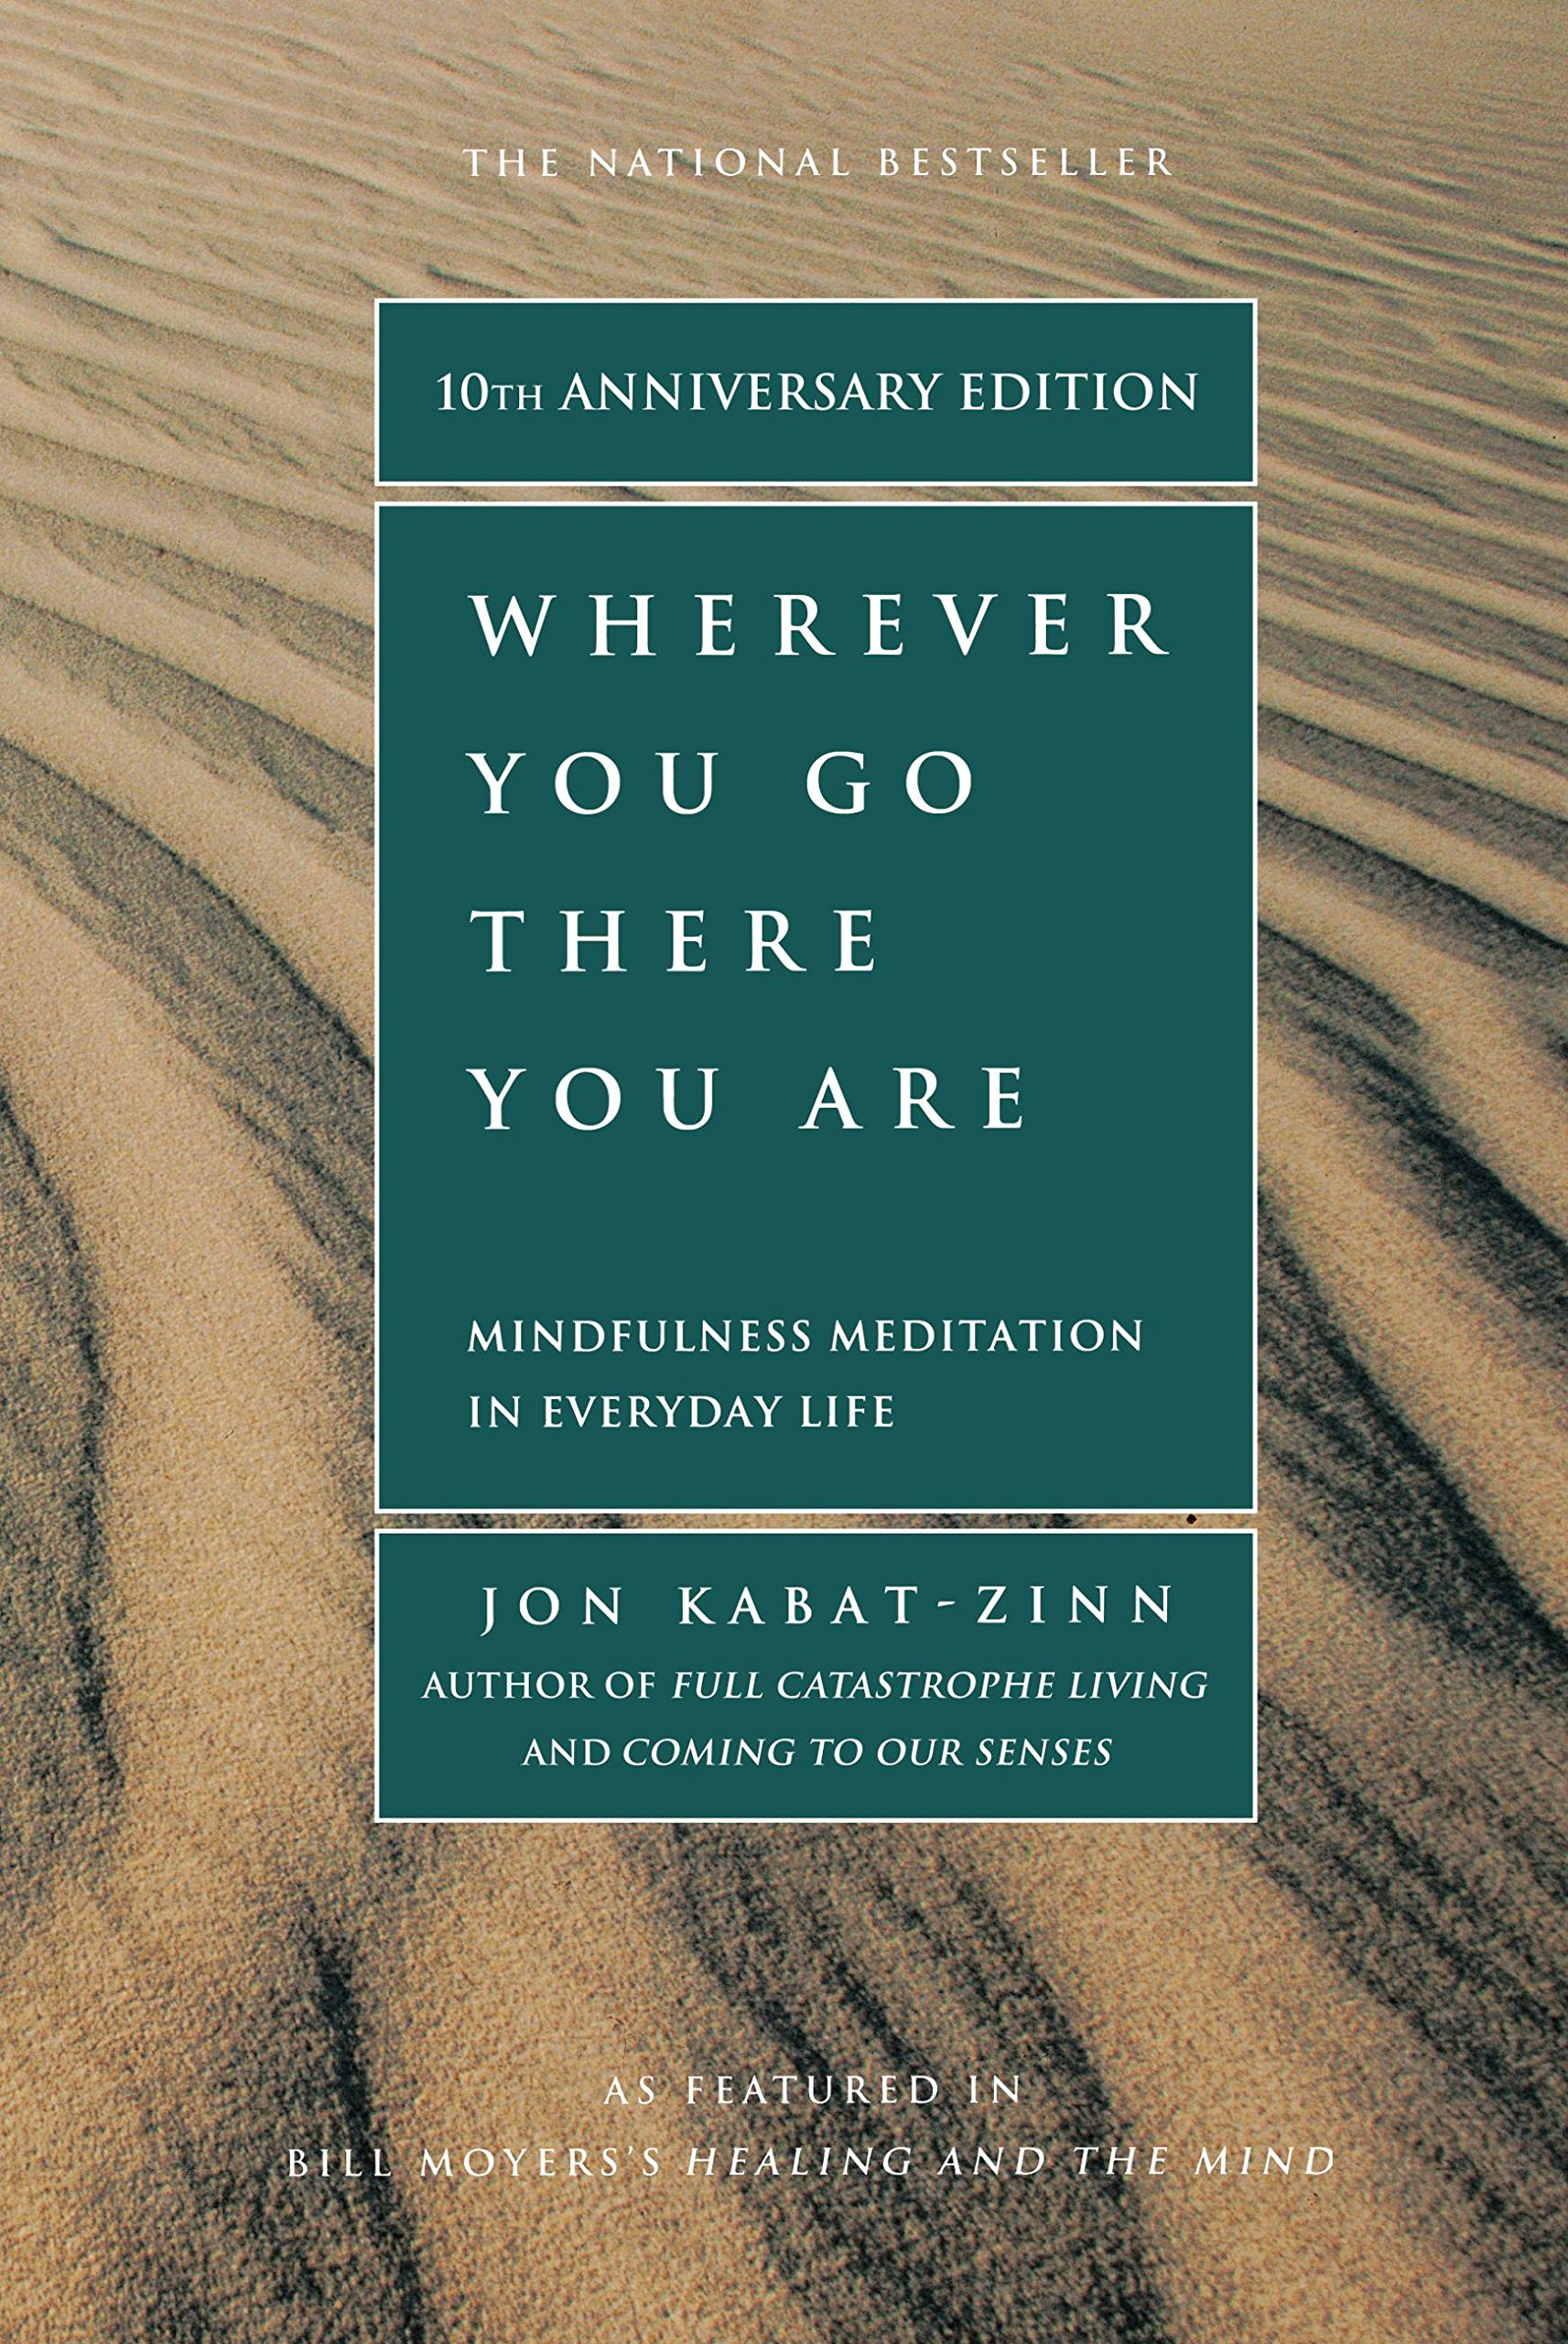 Wherever You Go There You Are  Mindfulness Meditation In Everyday Life  English Edition